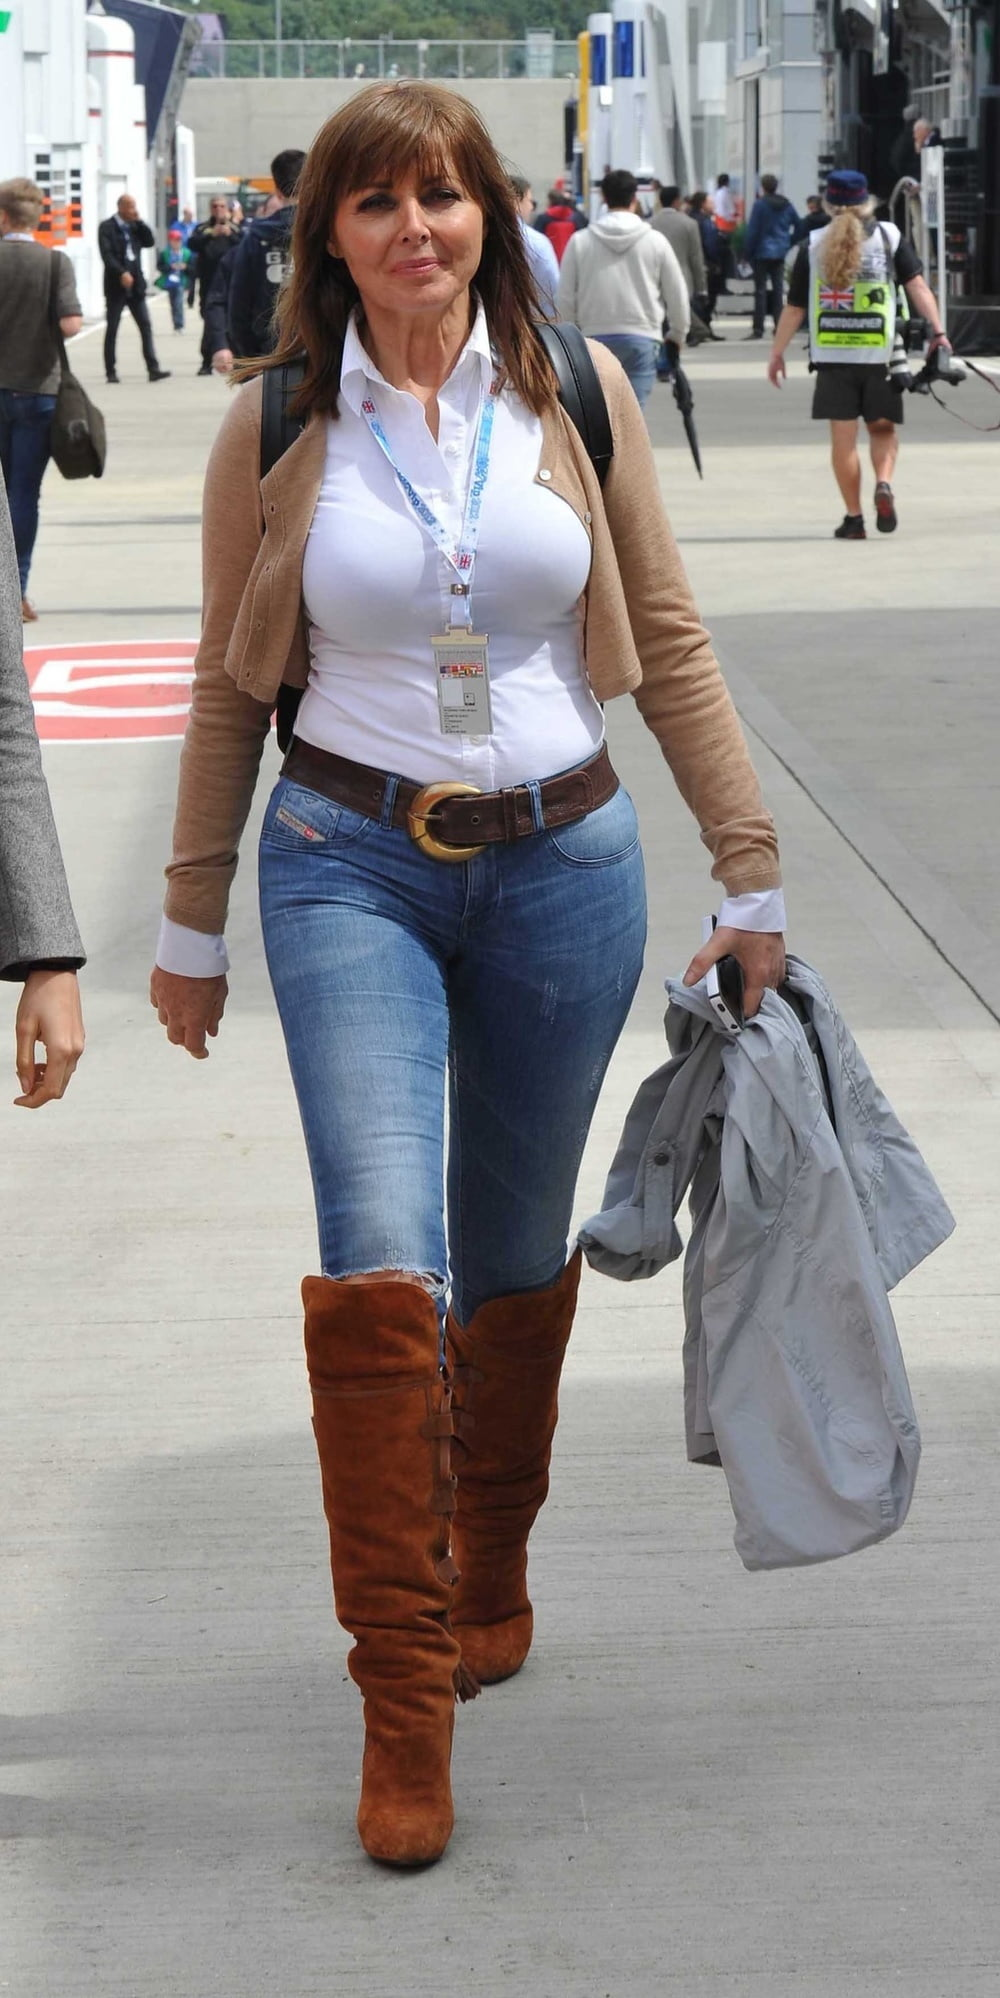 non-tight-jeans-milfs-tits-young